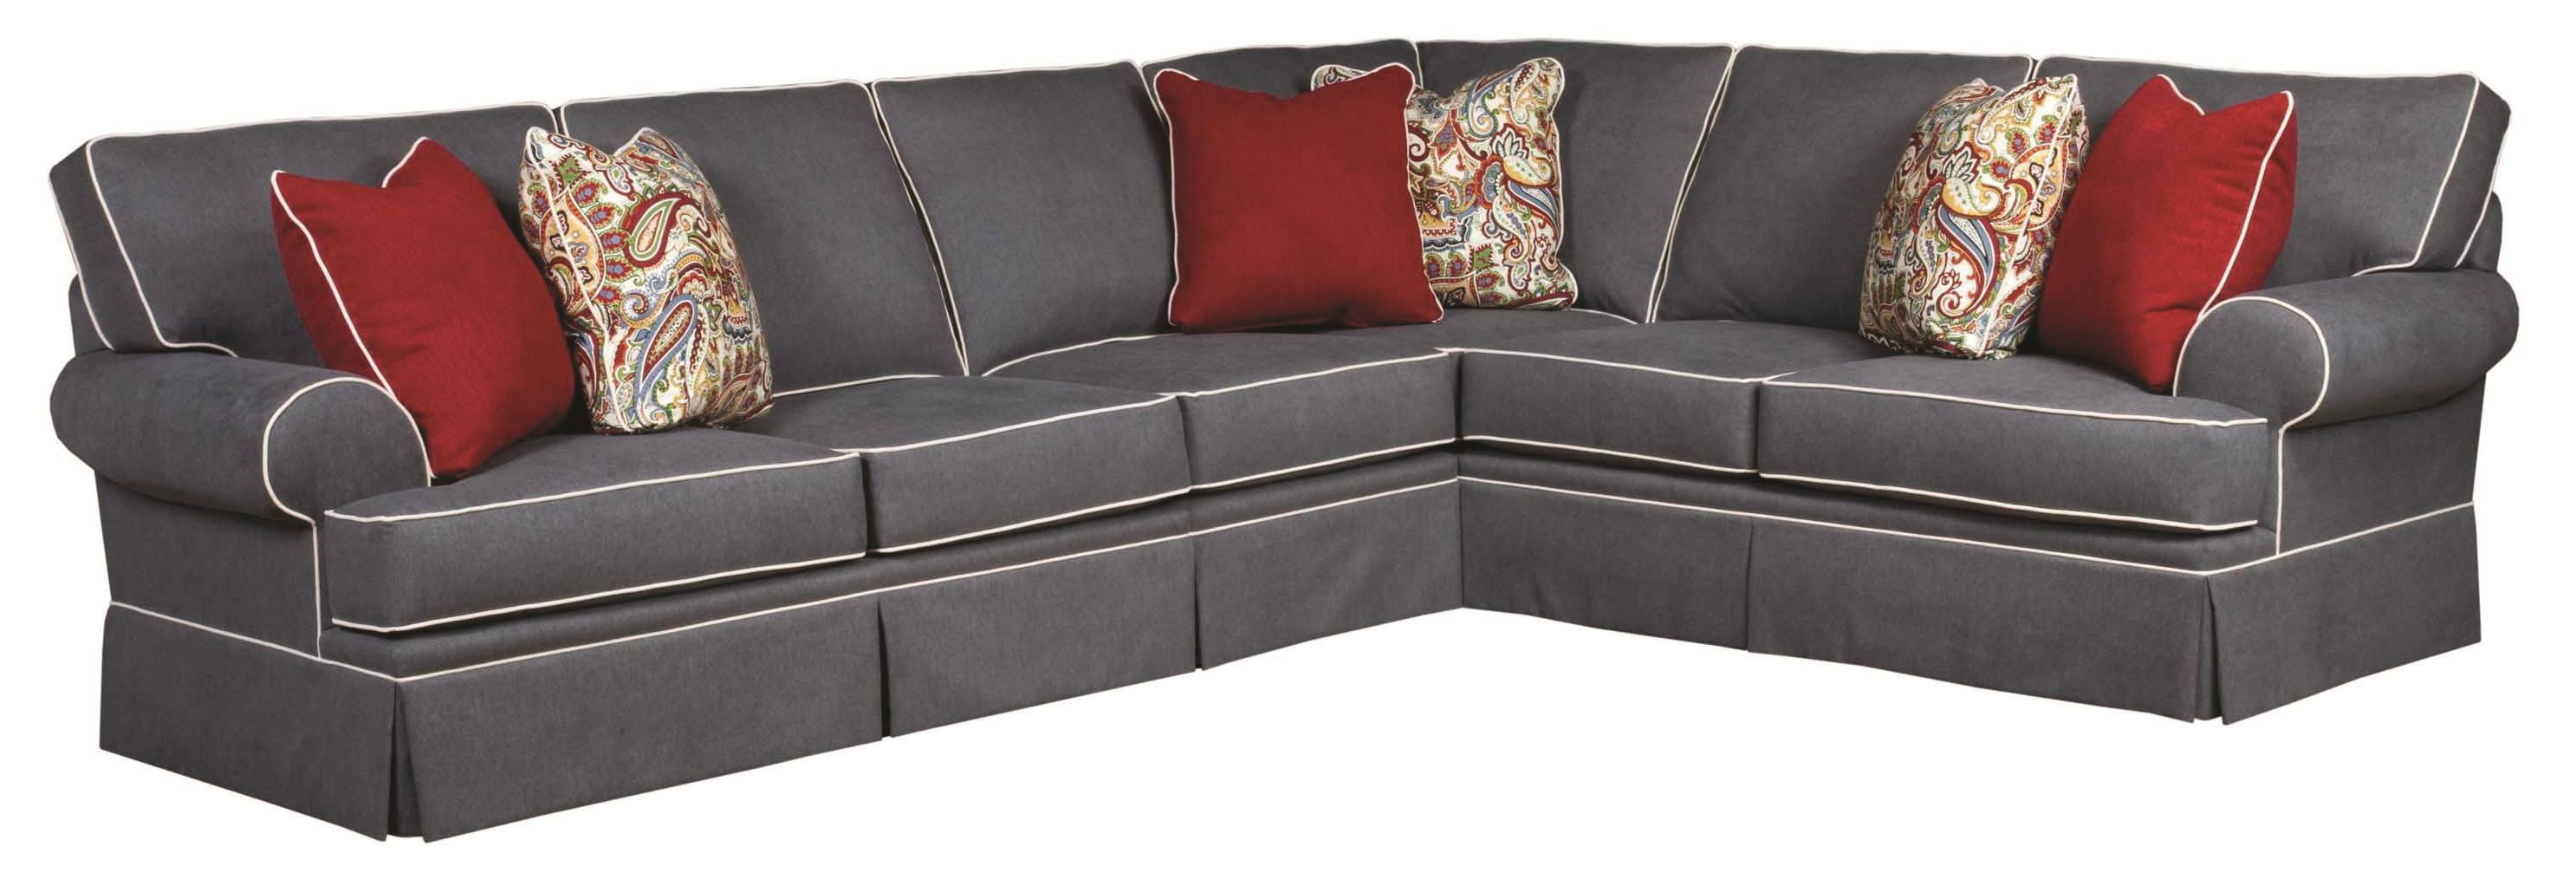 Broyhill Furniture Emily Traditional 3 Piece Sectional Sofa With Skirted  Base   Baeru0027s Furniture   Sectional Sofas